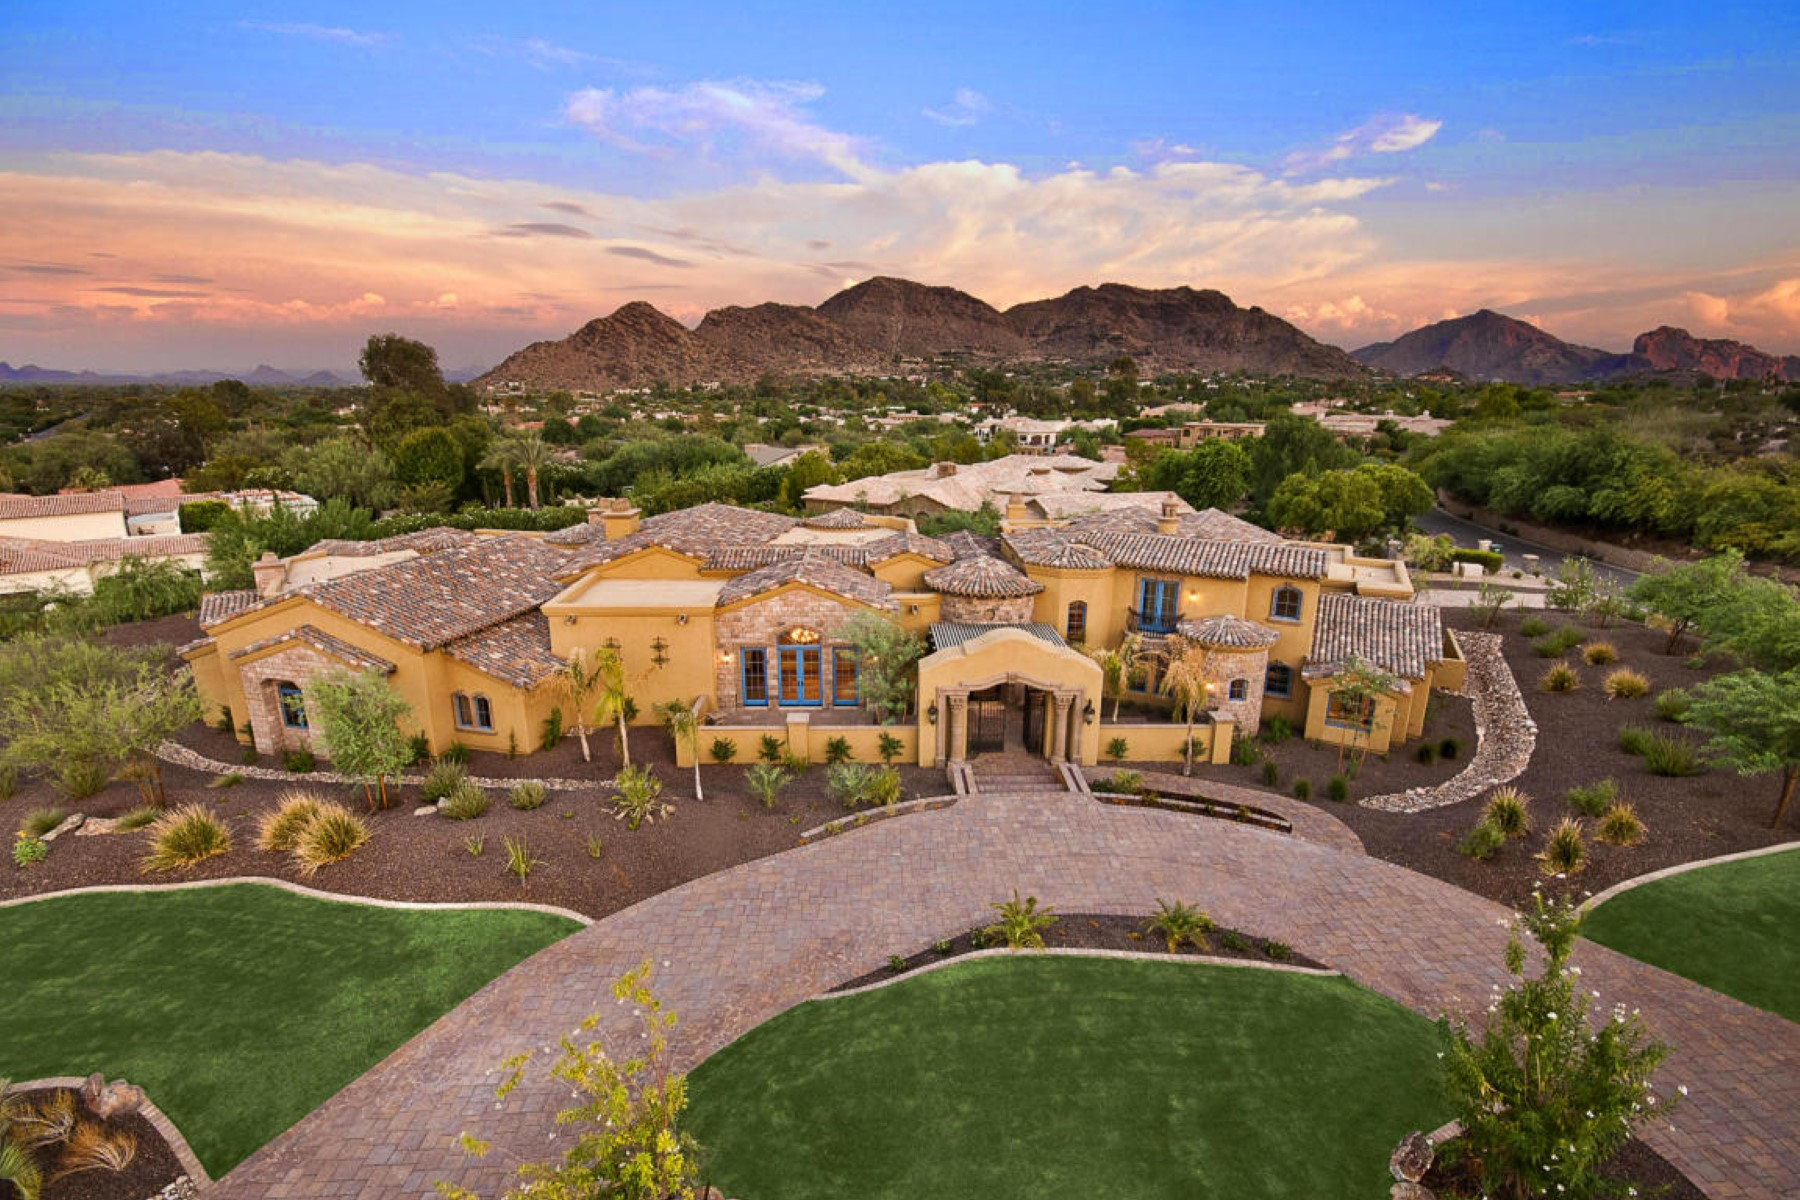 一戸建て のために 売買 アット Wonderful artistic Italian masterpiece in Paradise Valley 8329 N Ridgeview Dr Paradise Valley, アリゾナ, 85253 アメリカ合衆国